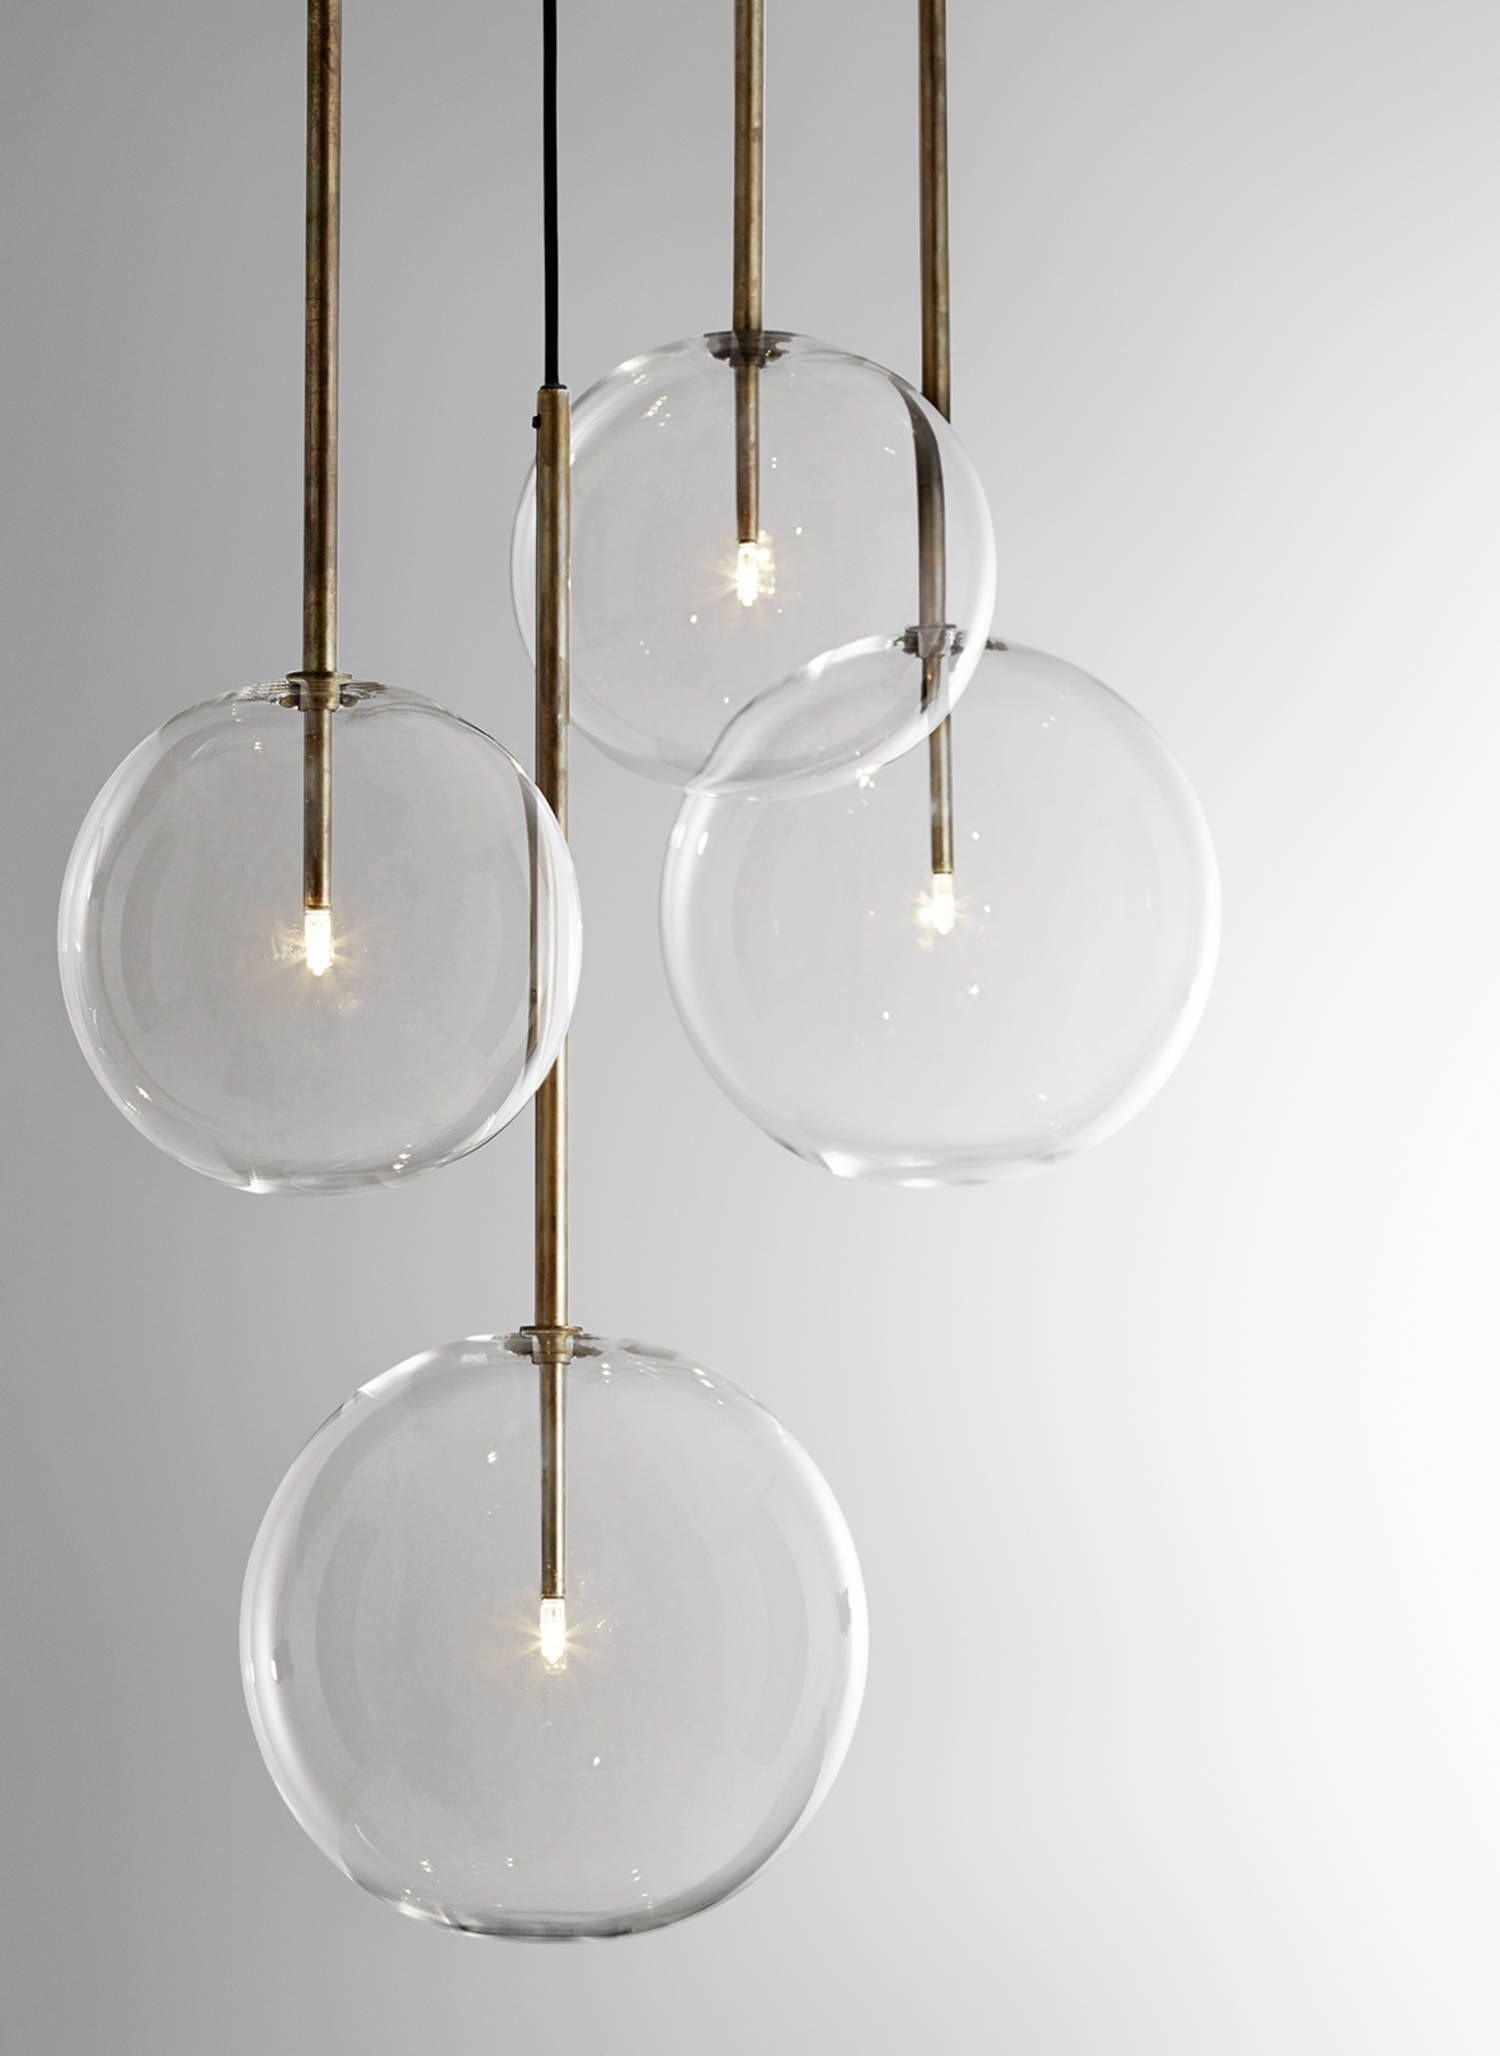 Bolle Sola lighting Beleuchtung luminaires